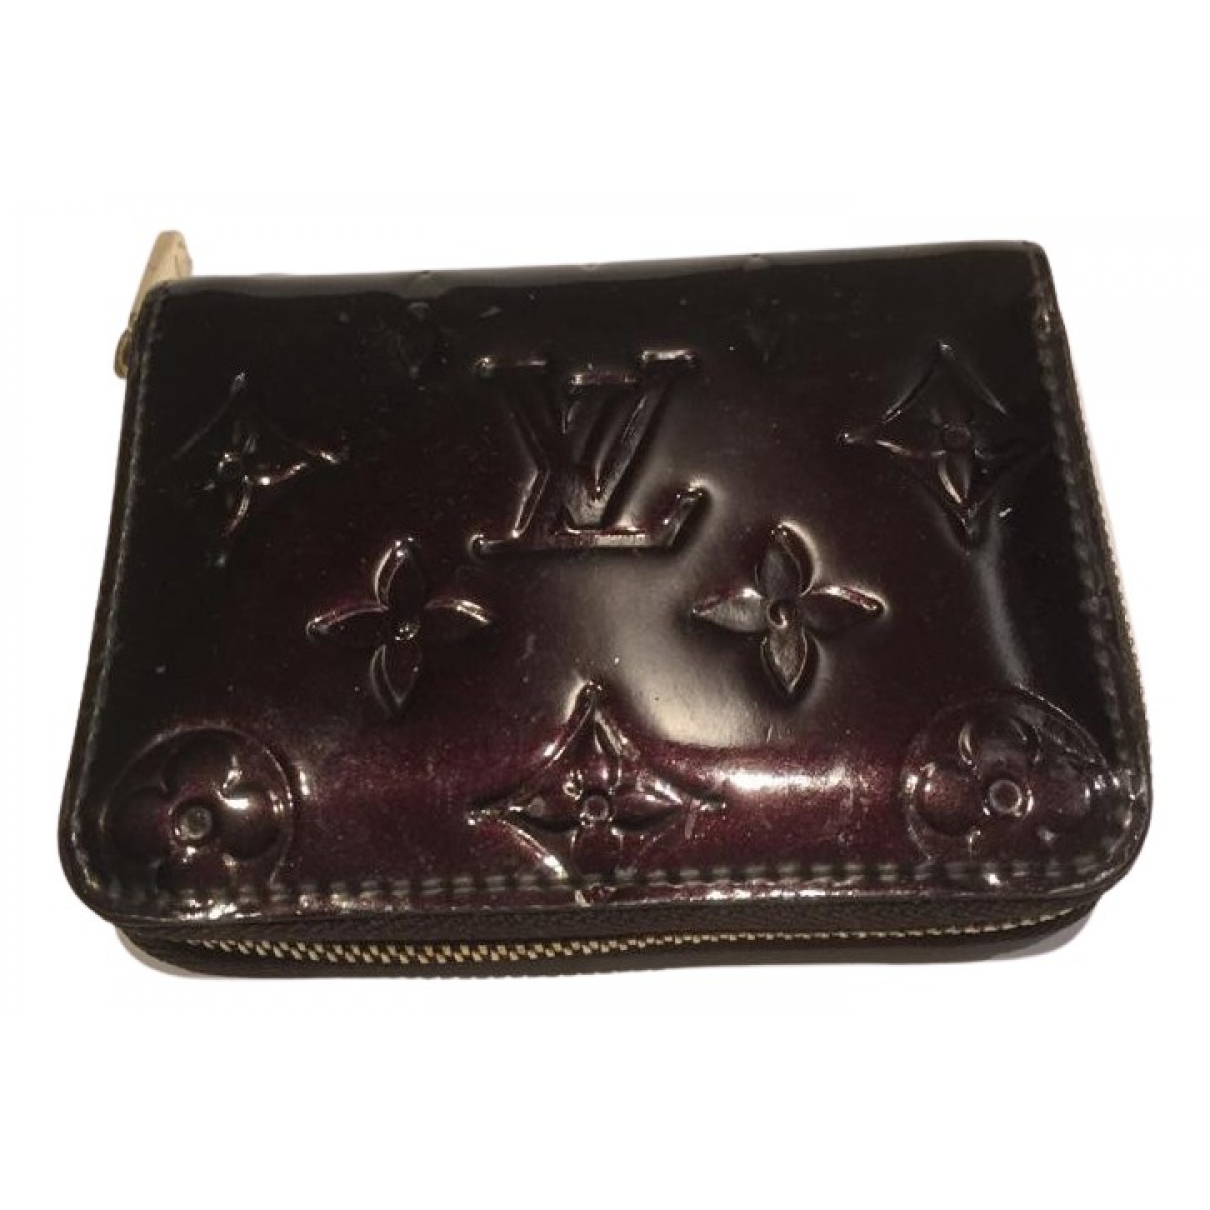 Louis Vuitton N Burgundy Patent leather Purses, wallet & cases for Women N